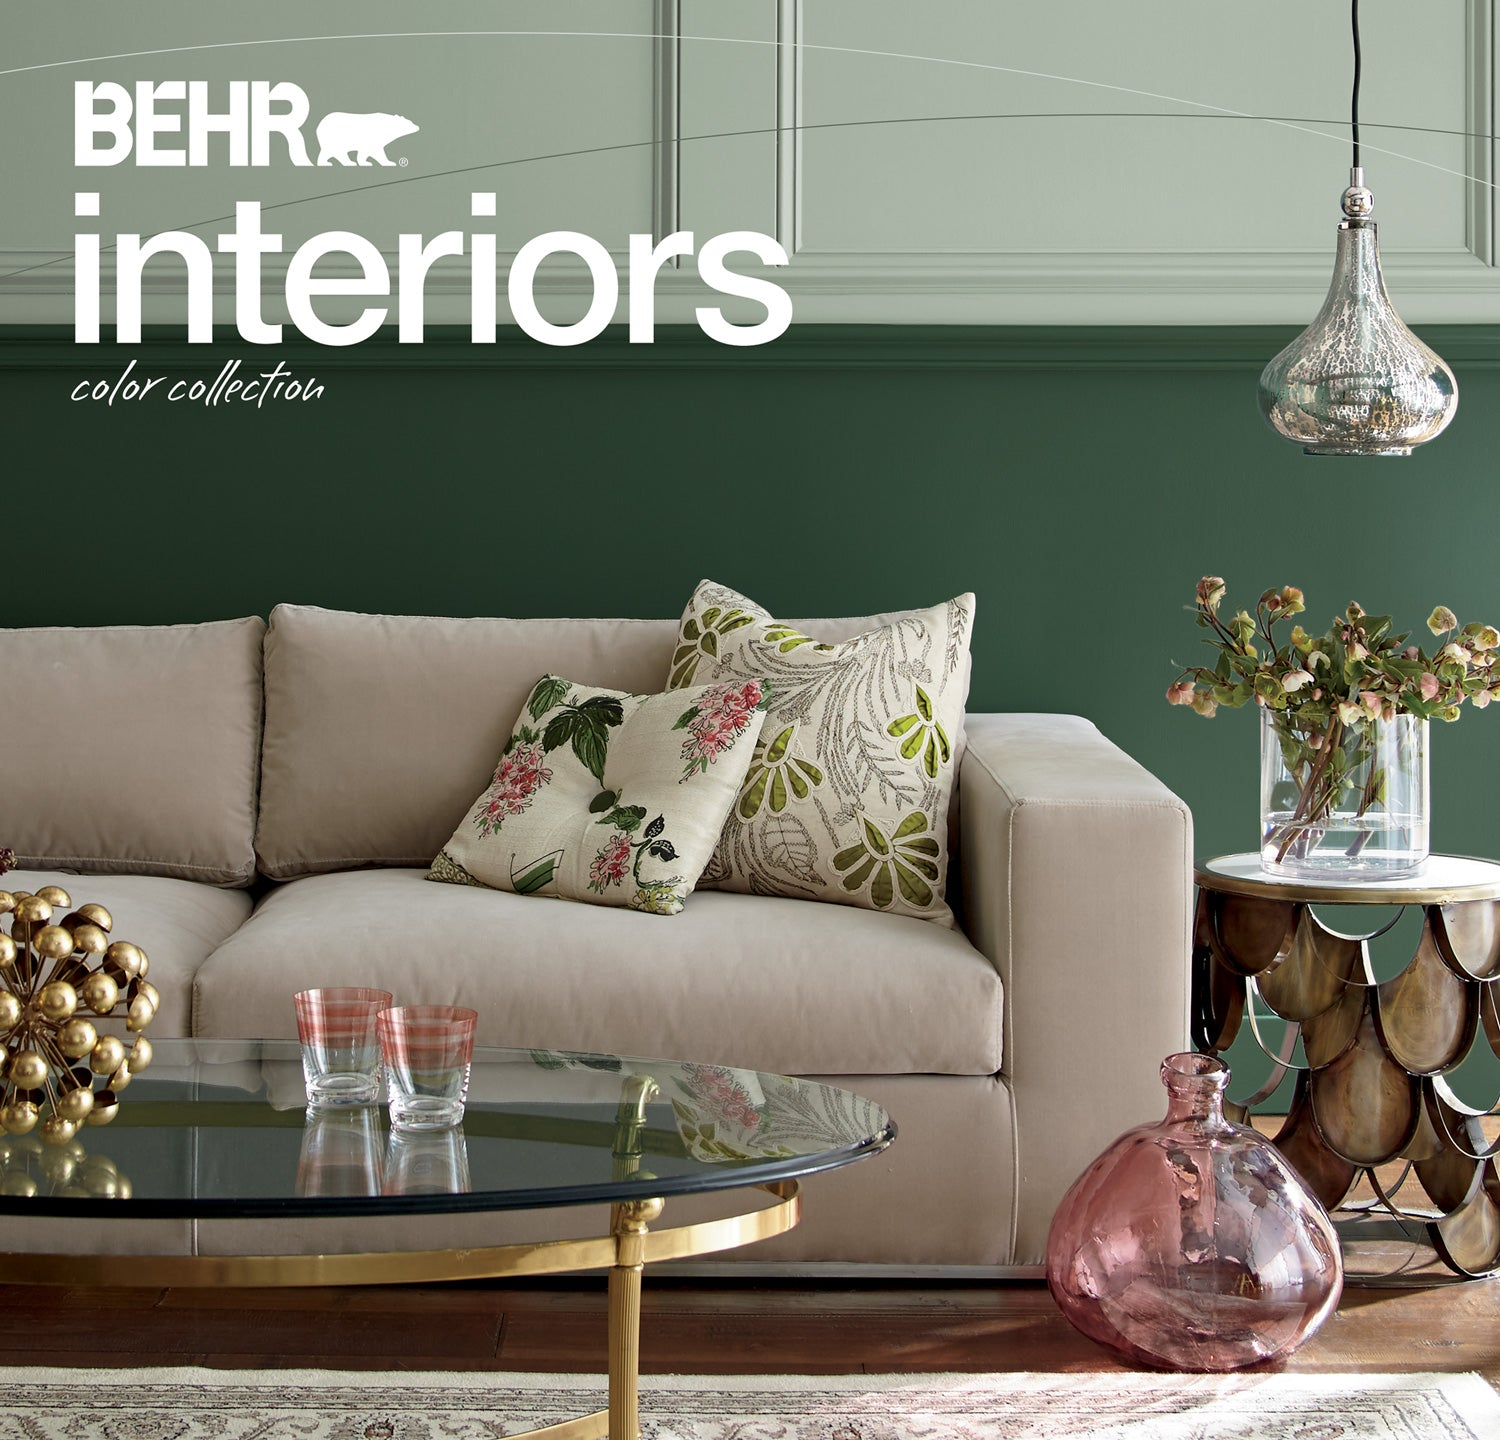 BEHR Interior Color Collection Brochure